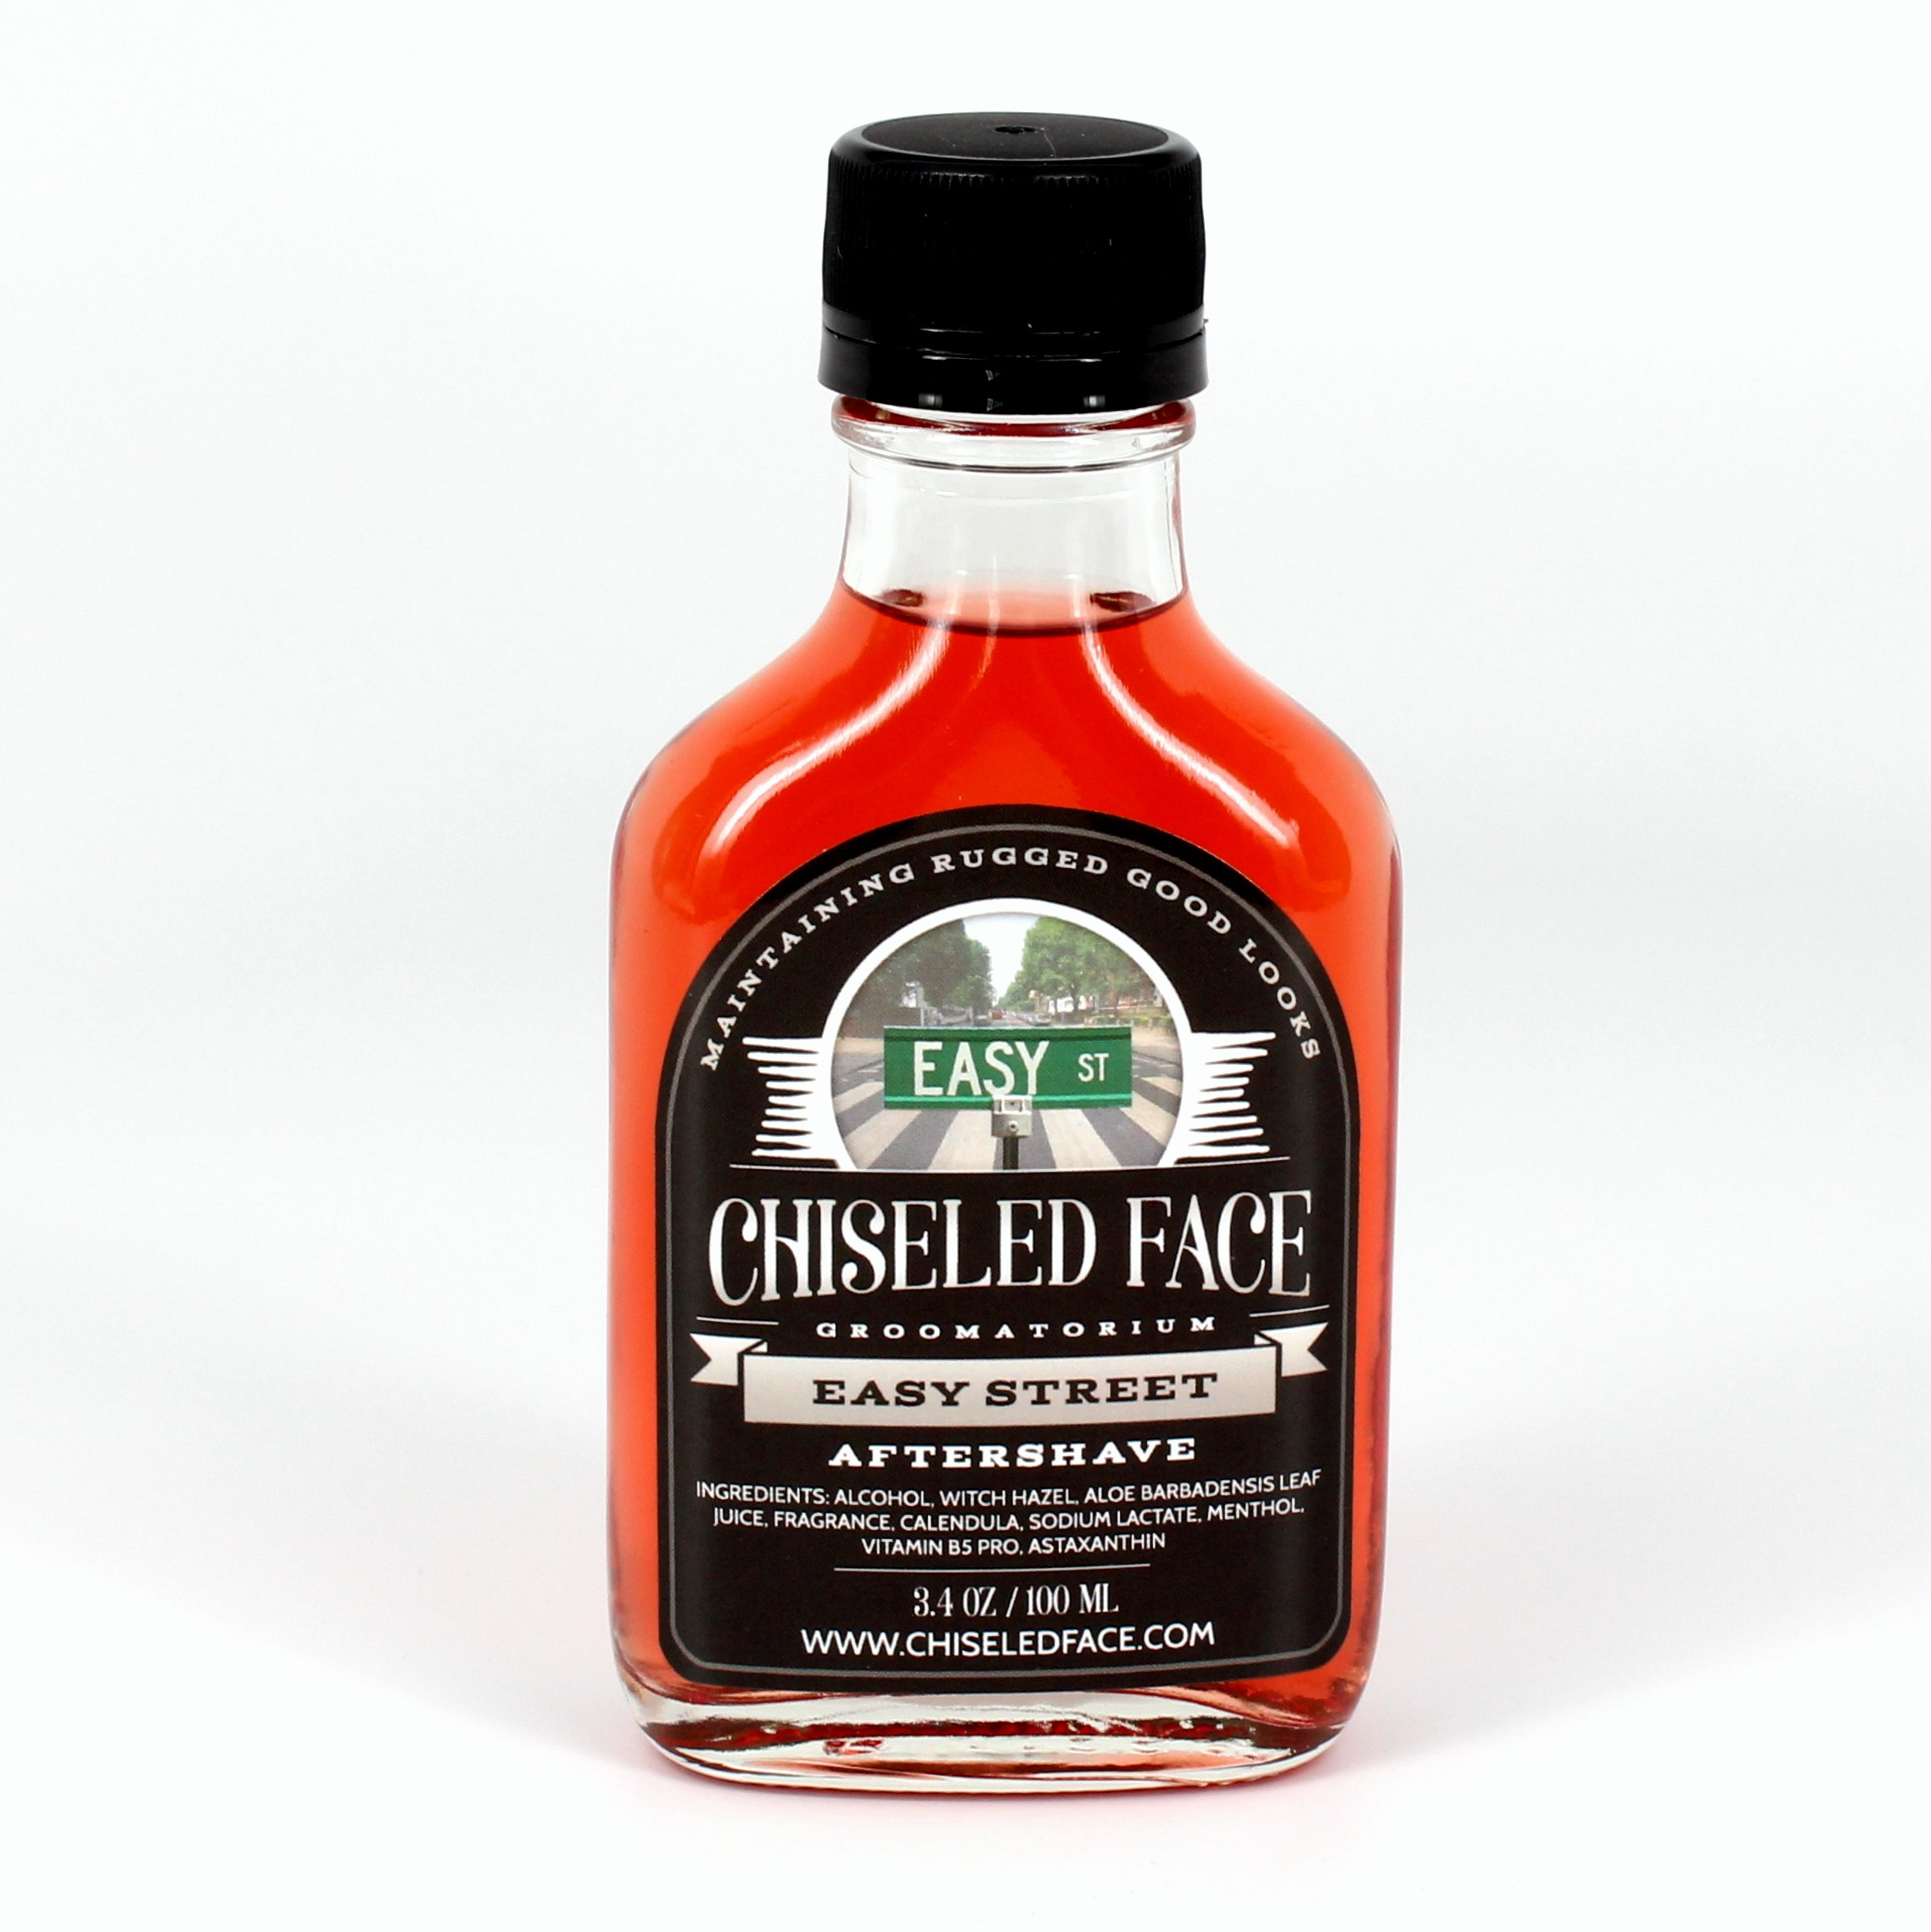 Chiseled Face - Easy Street - Aftershave image